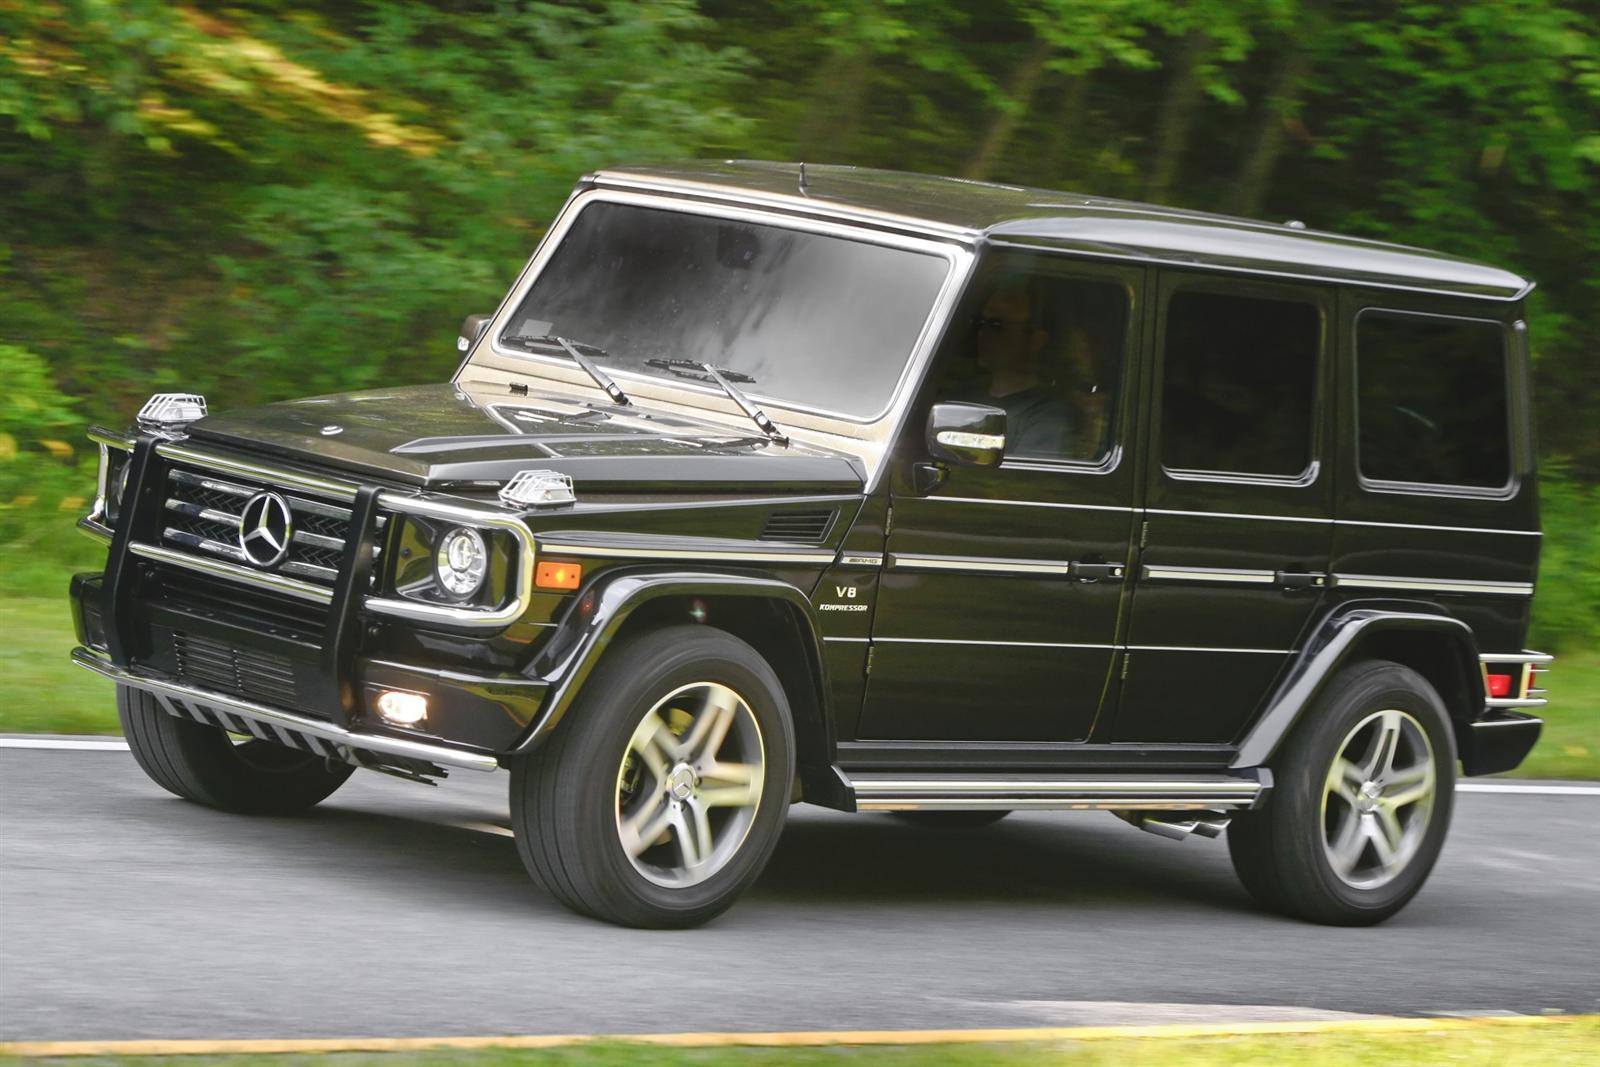 2011 Mercedes-Benz G-Class Image. Photo 20 of 22